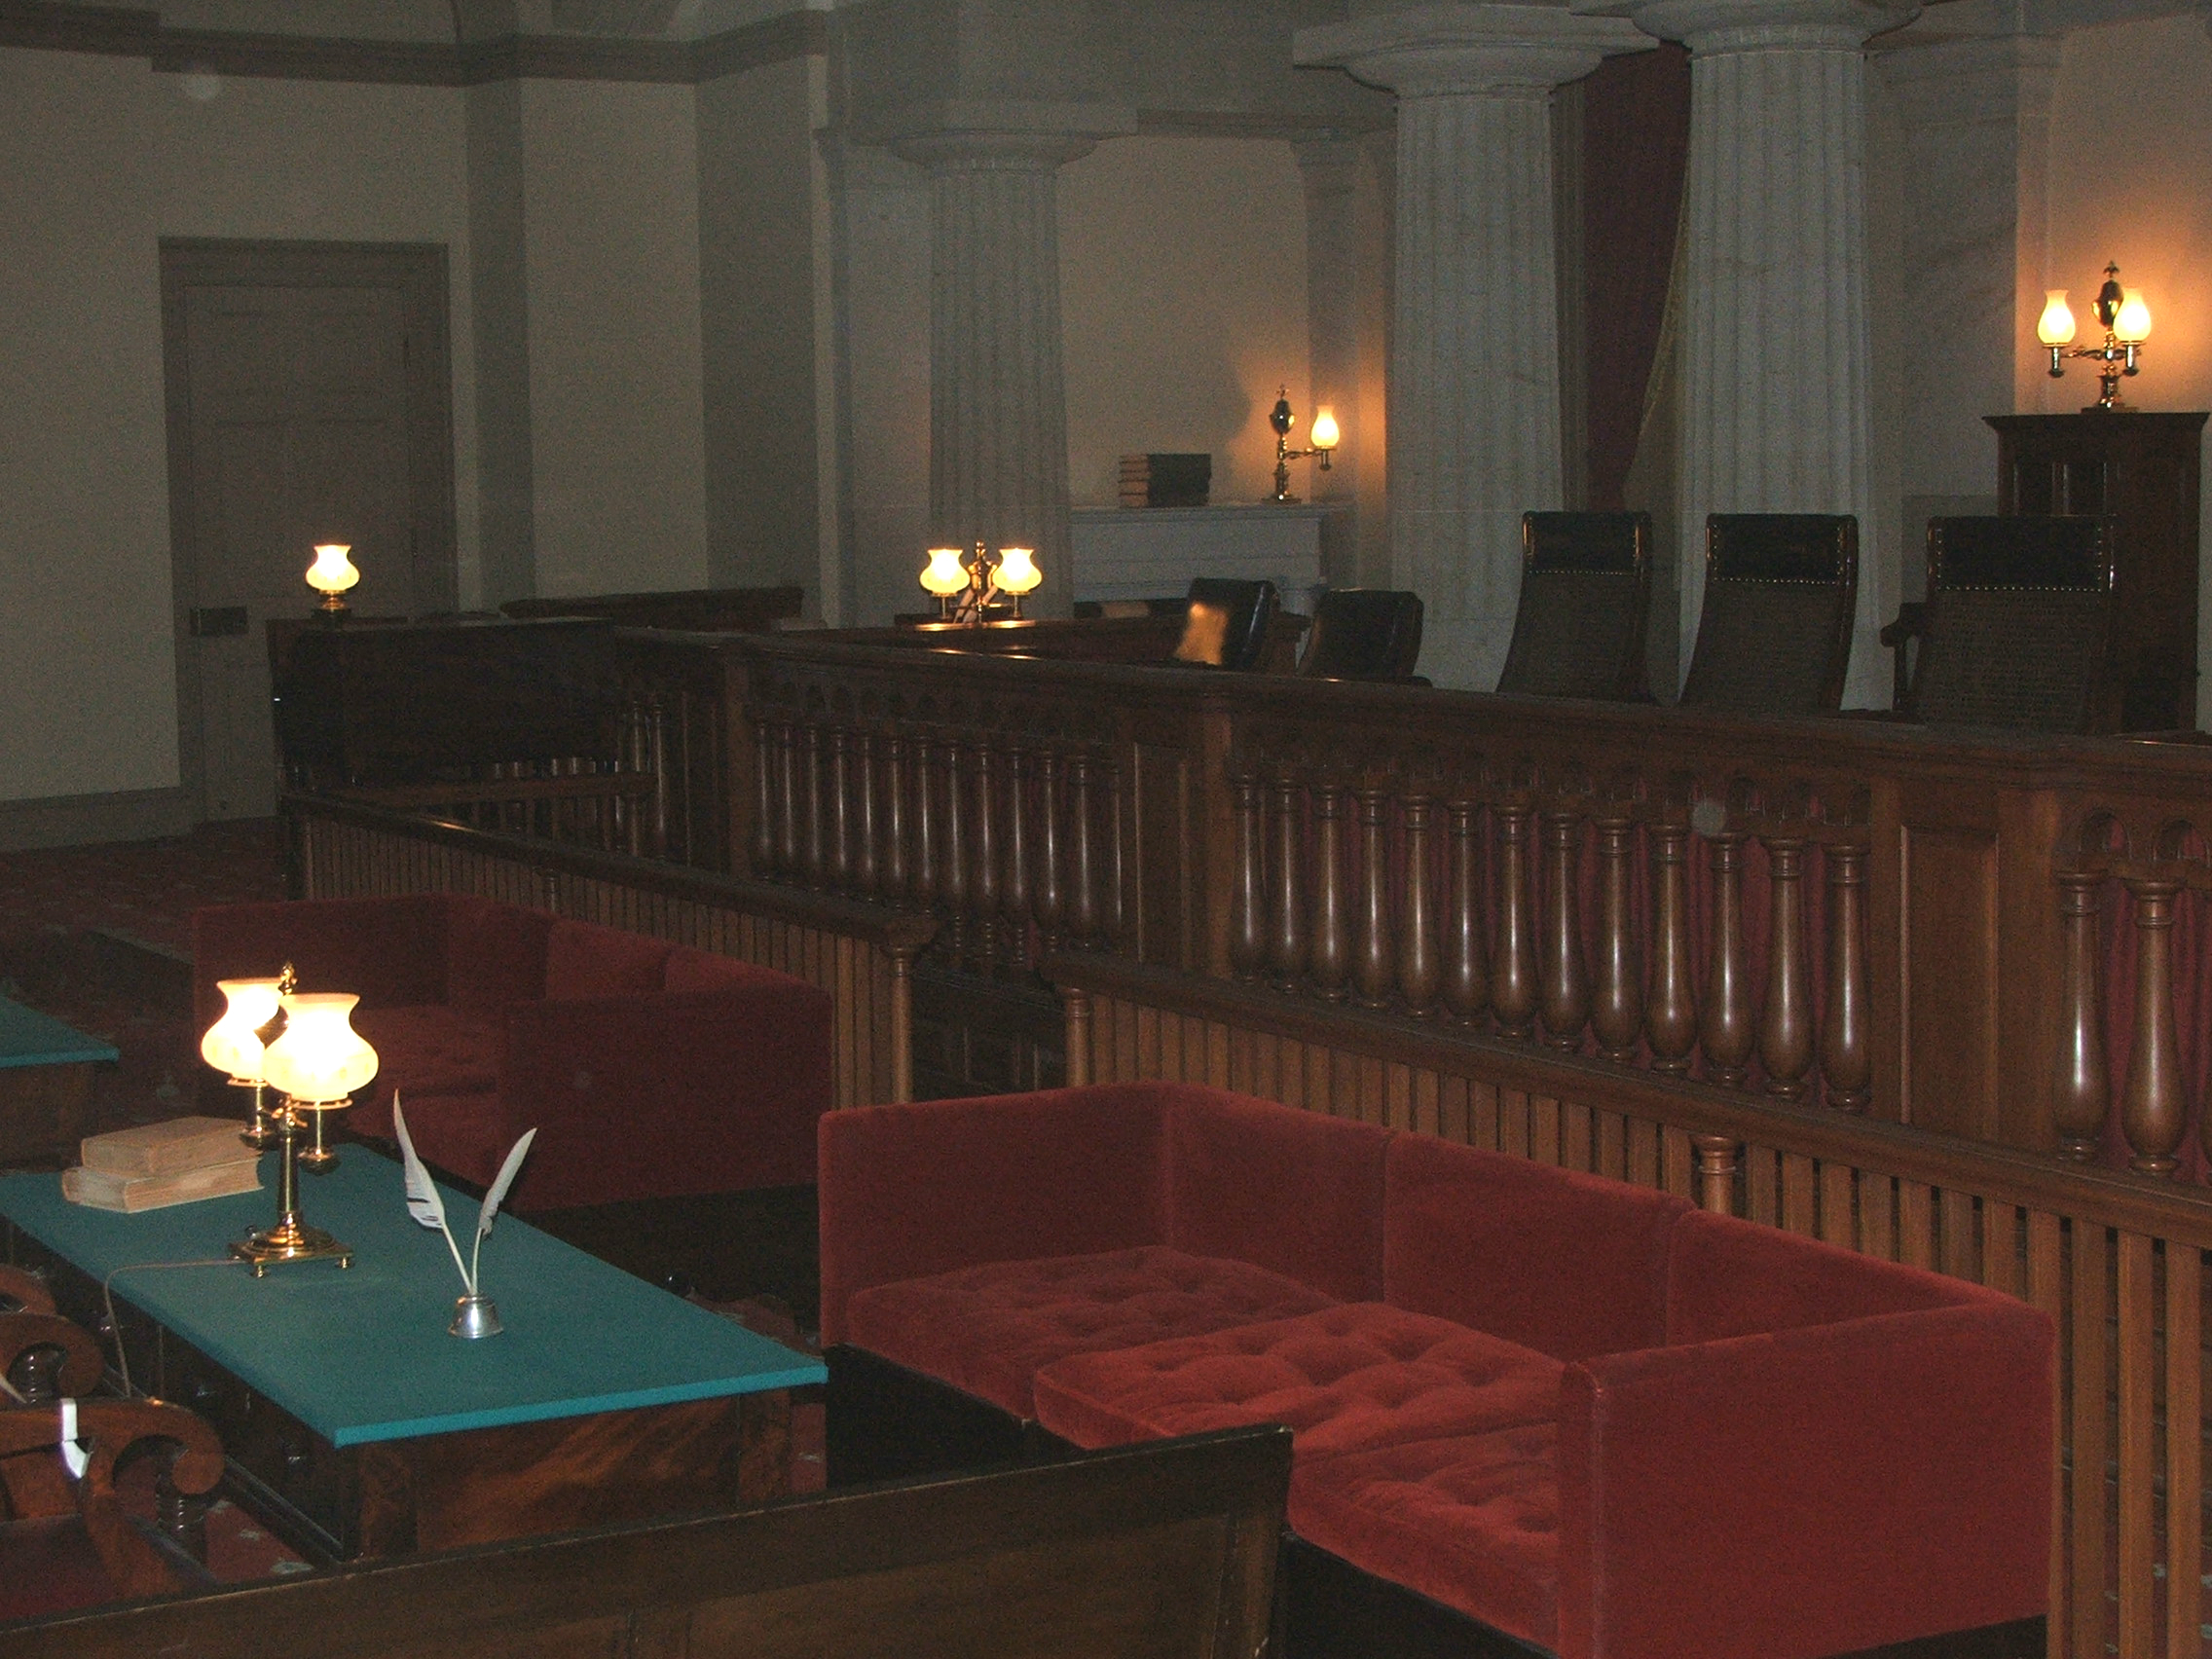 Quill pens and old-fashioned lanterns lend a historical air to the old Supreme Court Chamber.